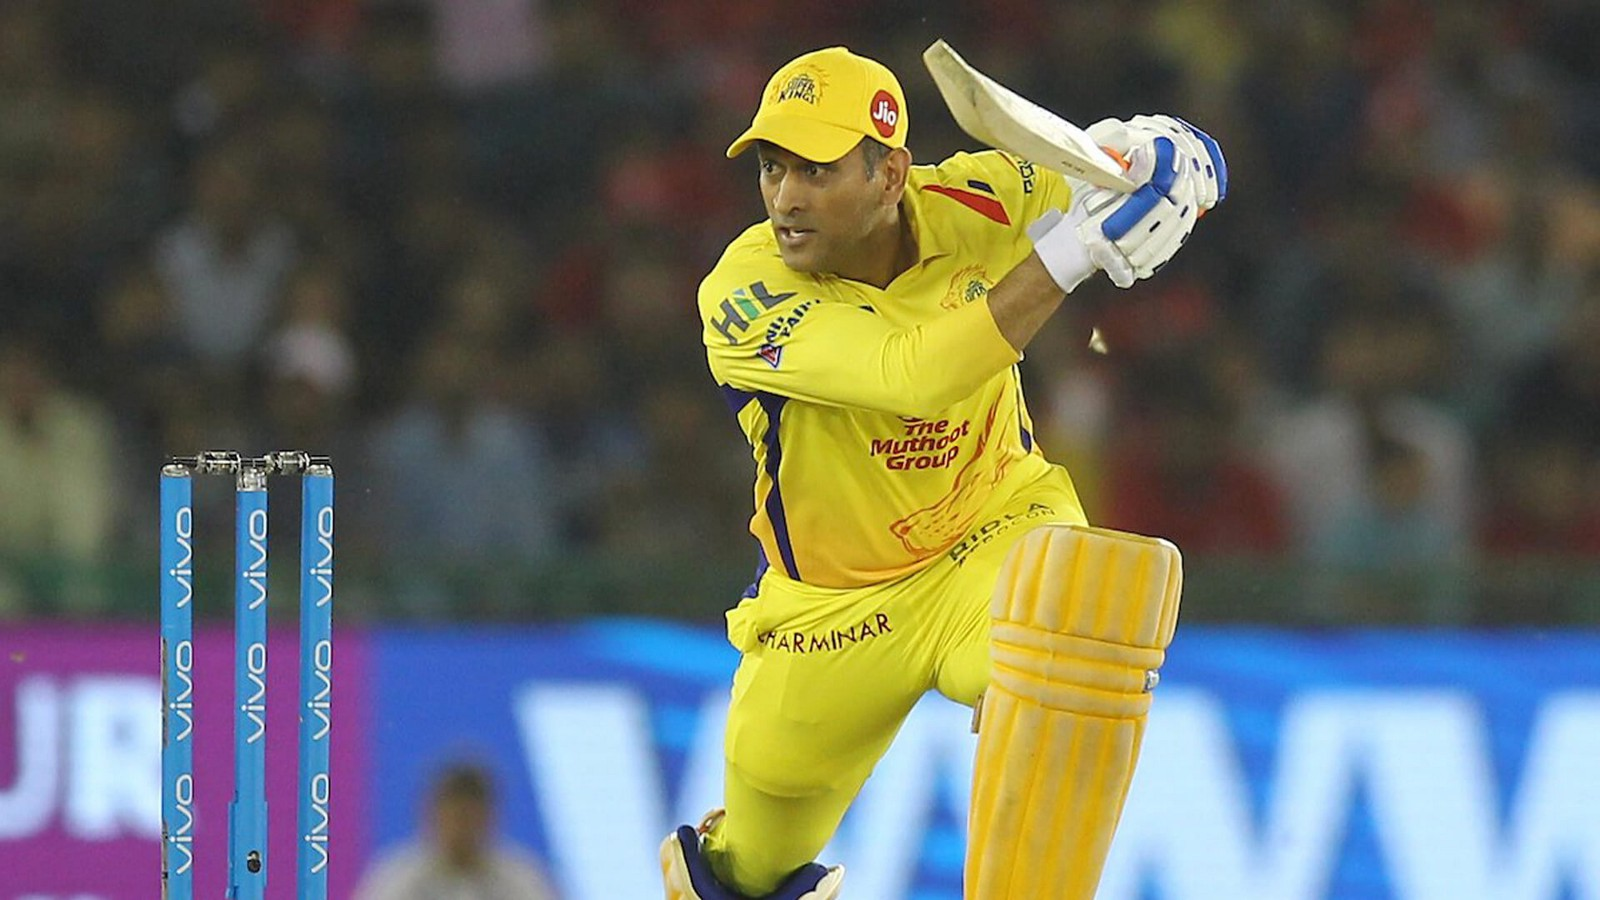 Csk Wallpapers Hd Download 2018 Fitrini S Wallpaper